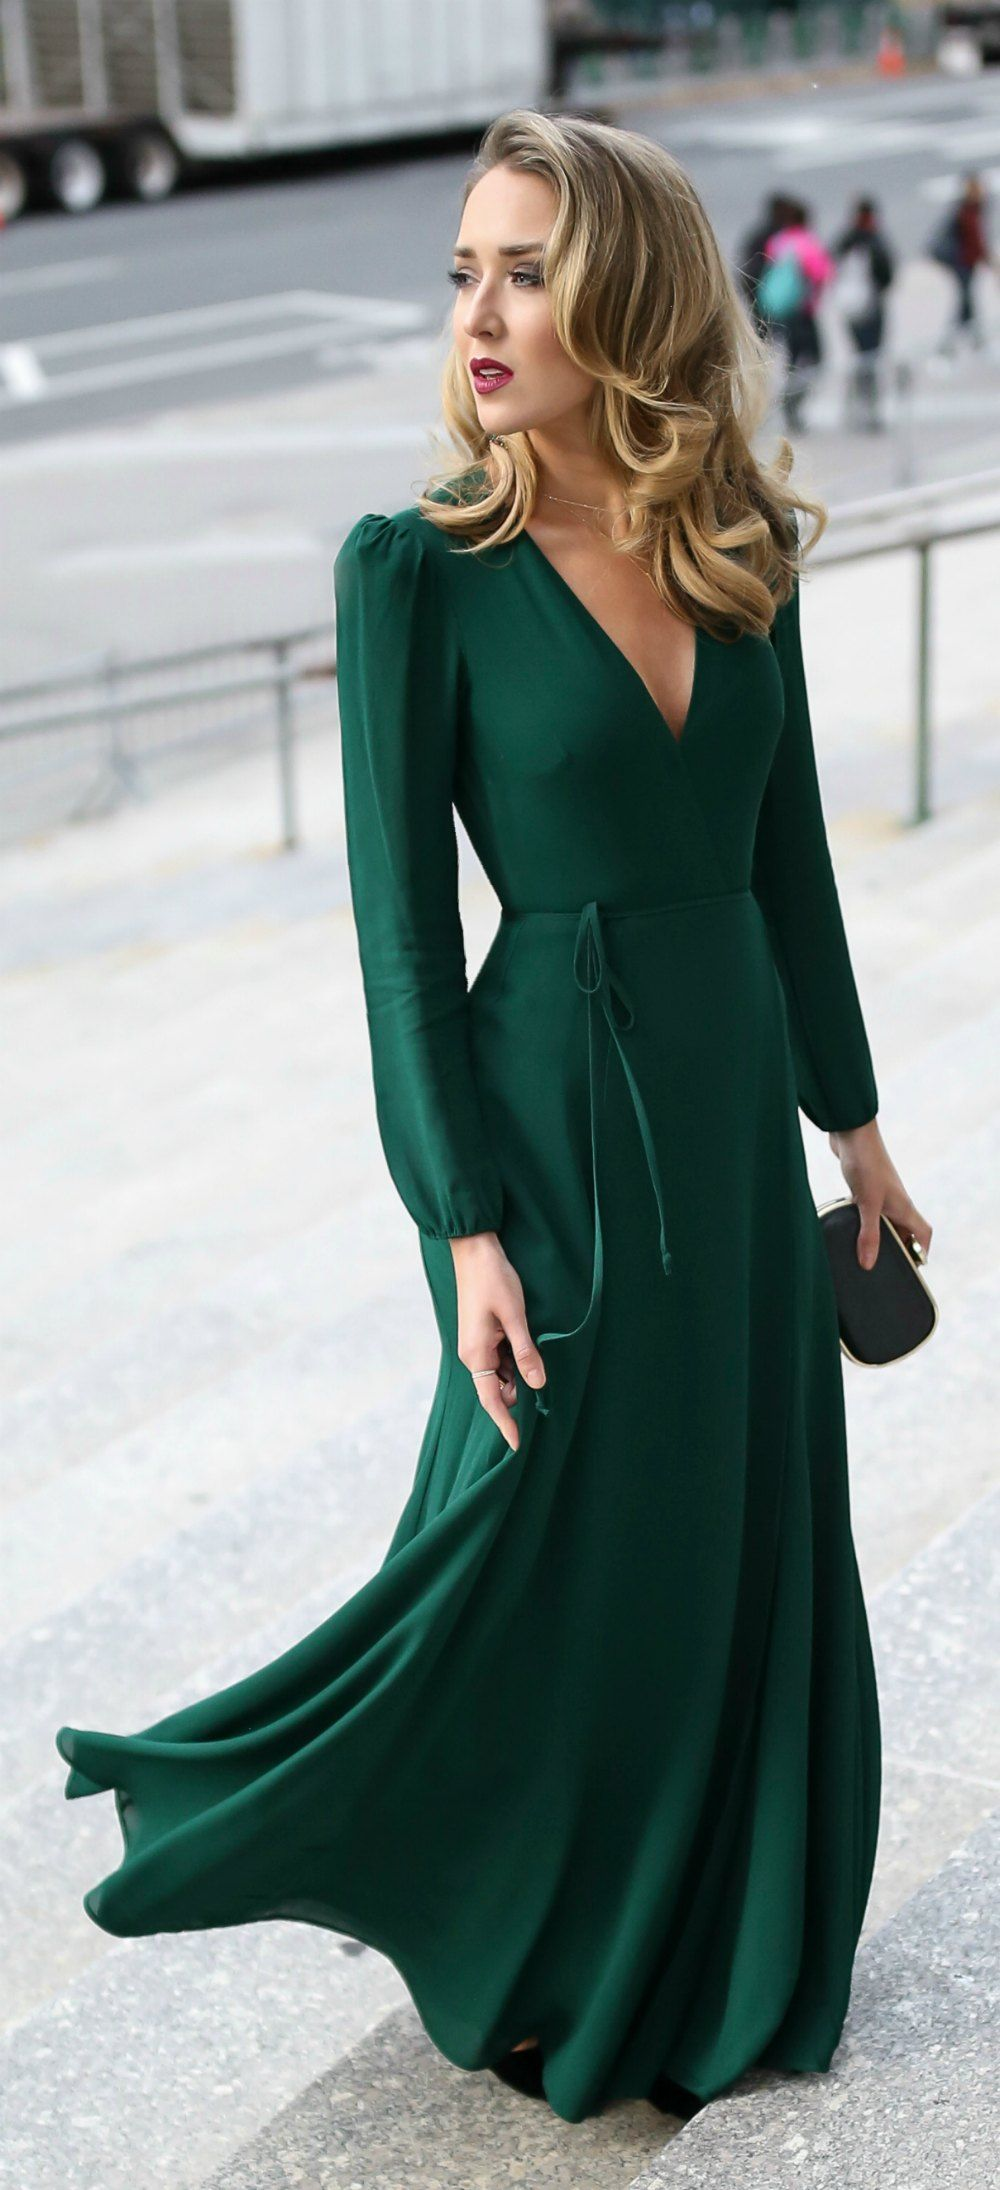 30 DRESSES IN 30 DAYS: Black Tie Wedding Guest // Emerald green long ...